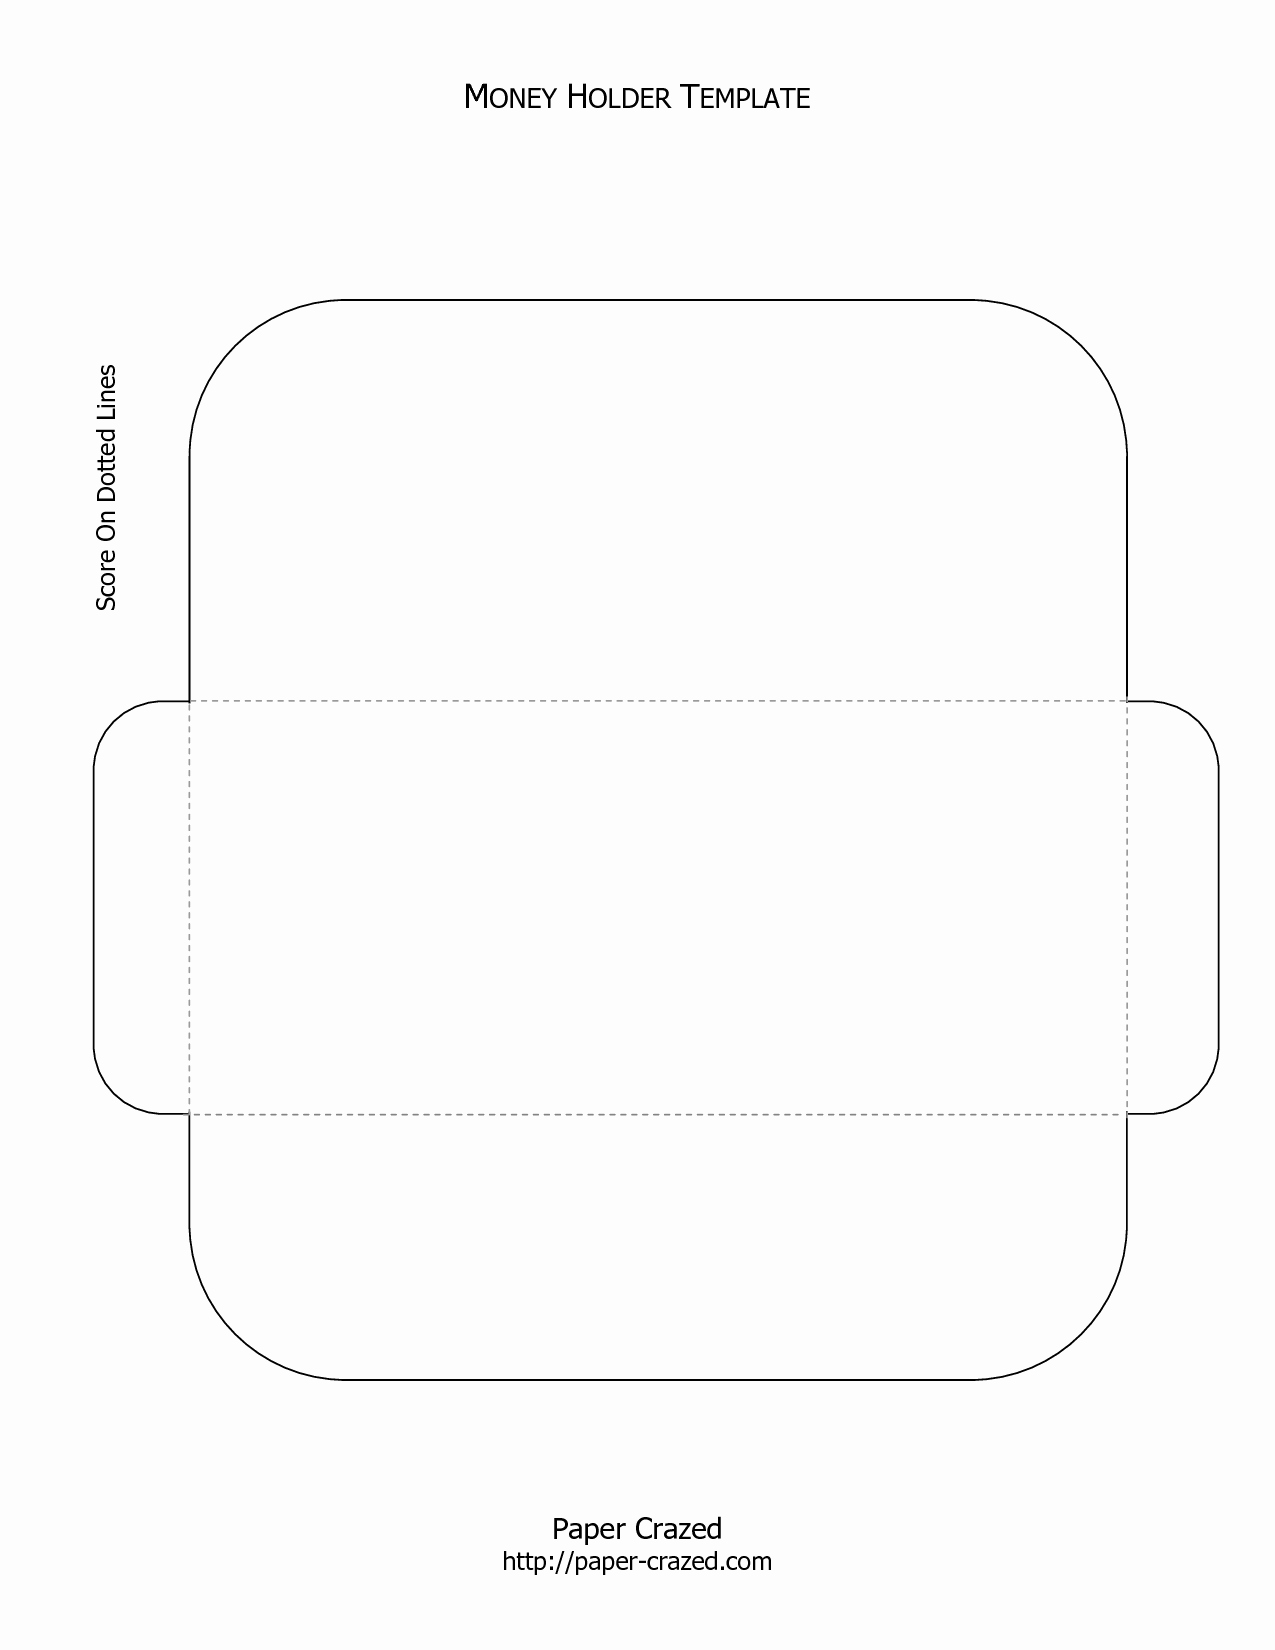 Gift Card Envelope Template Beautiful Money Holder Template Gift Wrap